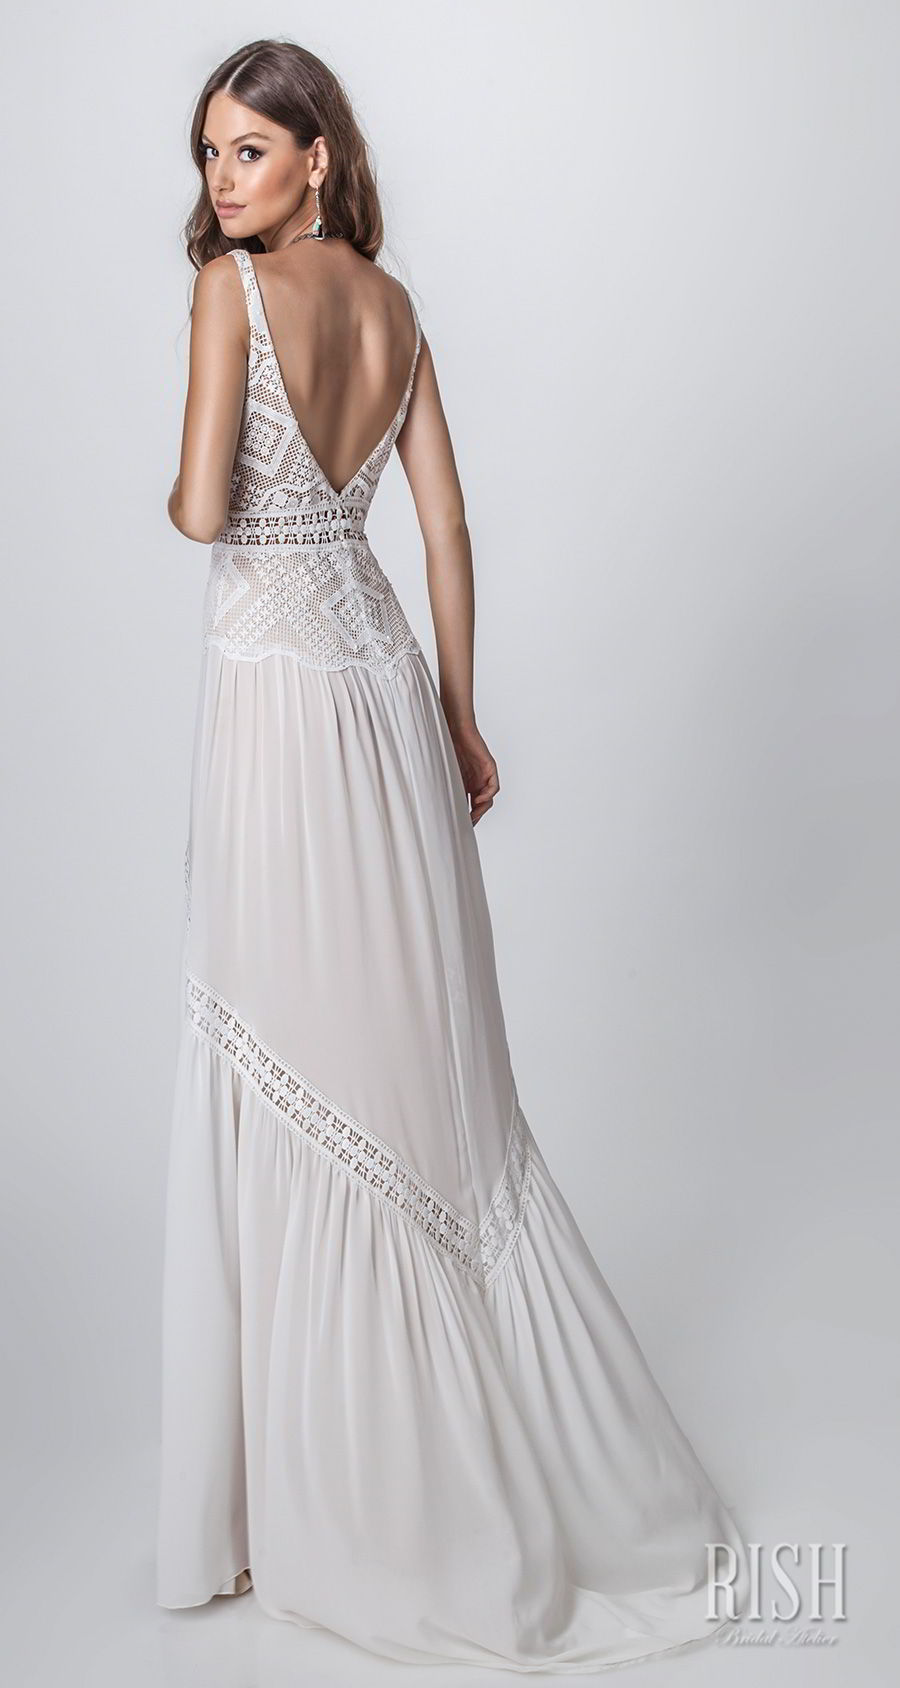 rish bridal sun dance 2018 sleeveless deep sweetheart neckline heavily embellished bodice bohemian soft a  line wedding dress open v back sweep train (layla) bv